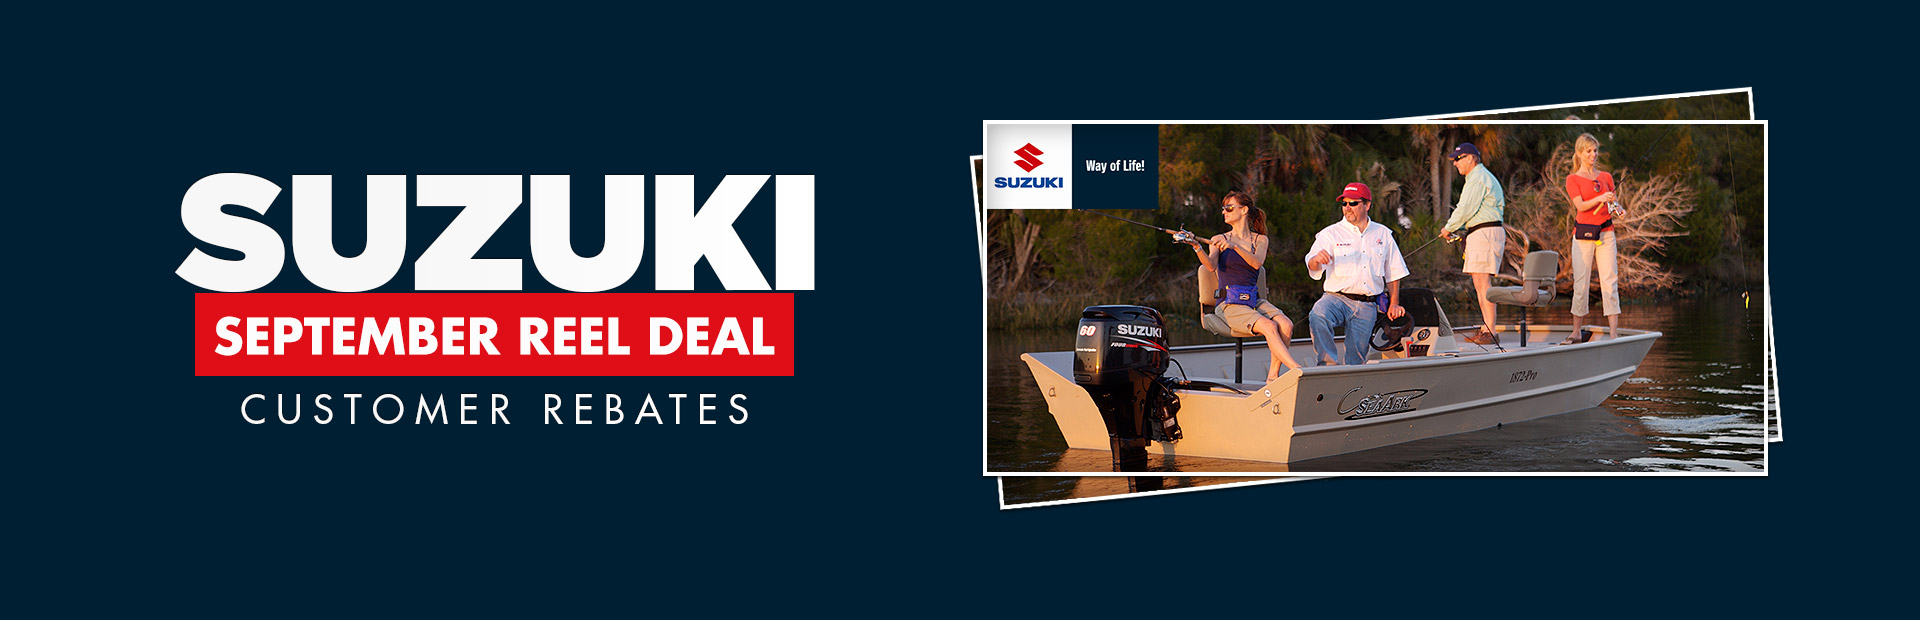 Suzuki: September Reel Deal Customer Rebates